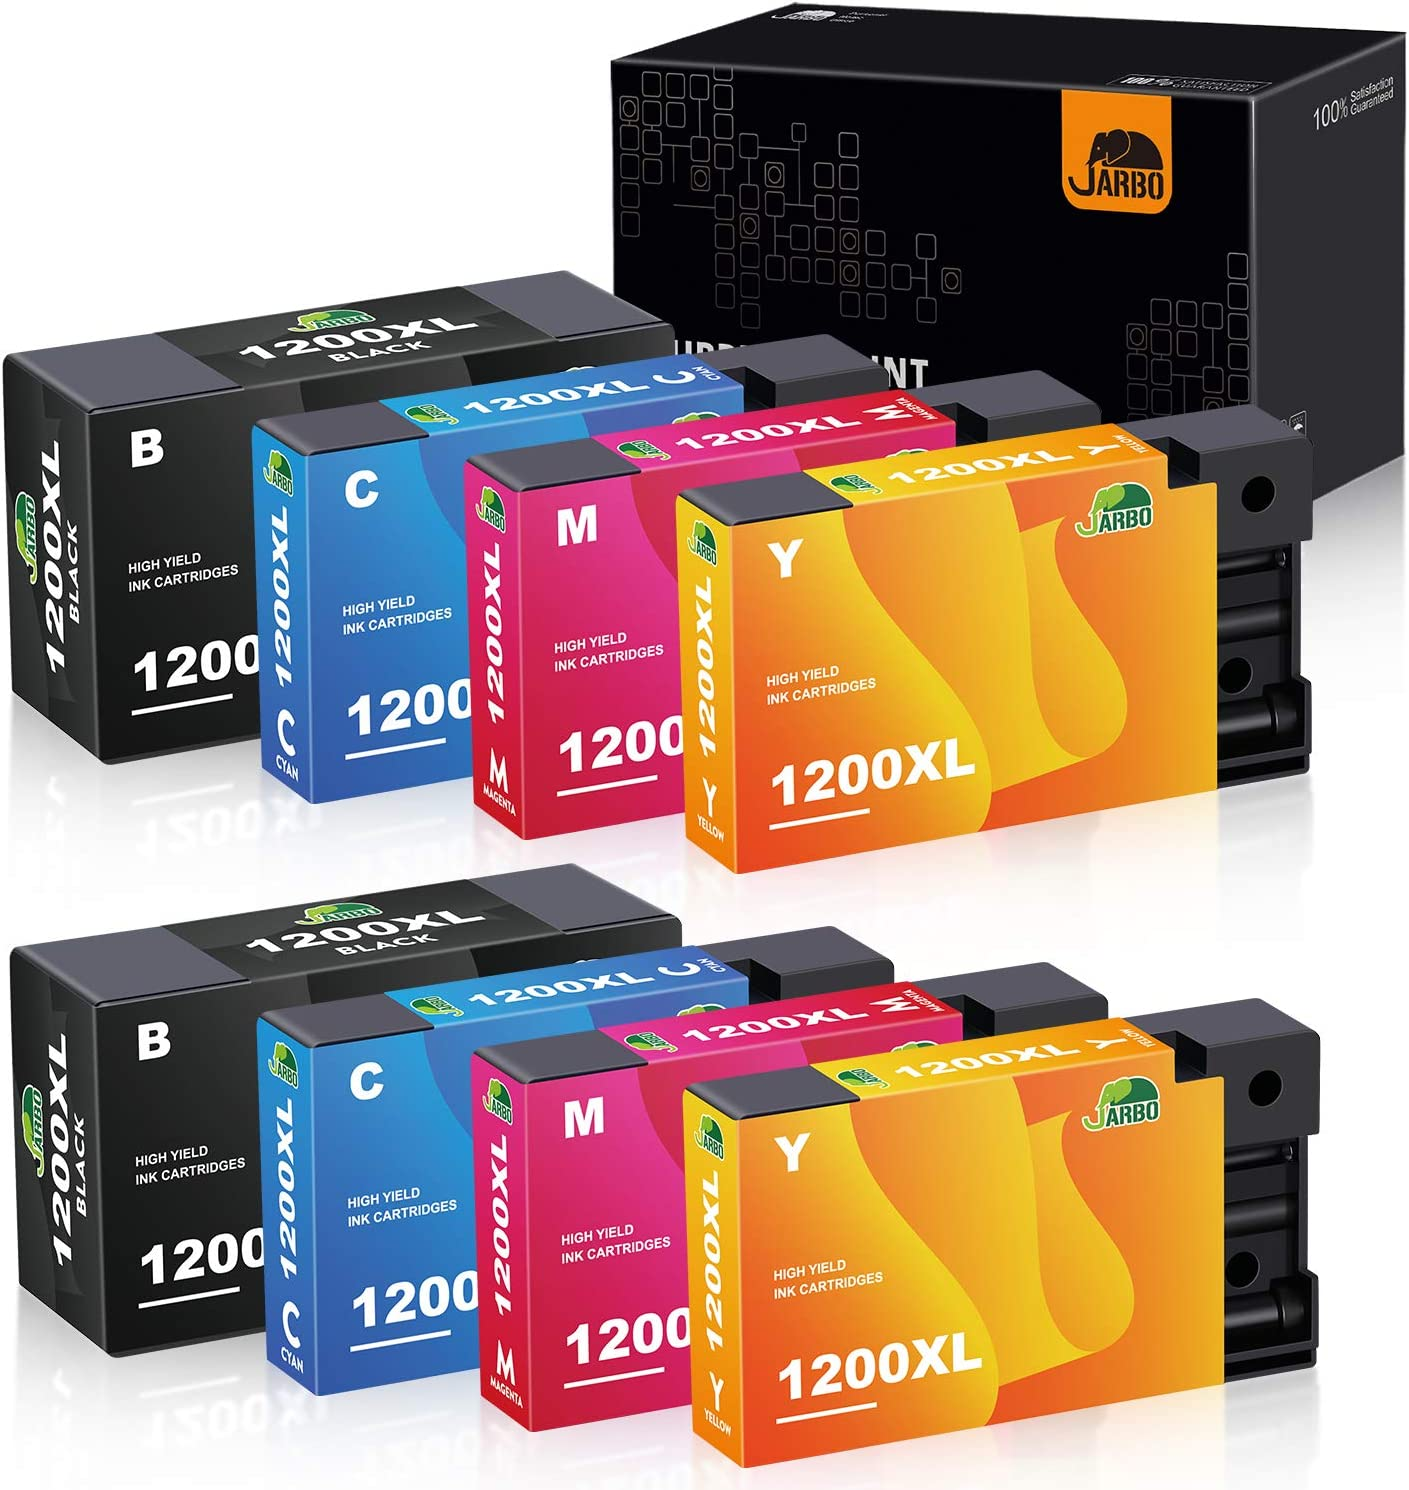 JARBO Compatible Ink Cartridge Replacement for Canon PGI-1200XL 1200 XL, for Canon Maxify MB2720 MB2320 MB2020 MB2120 MB2350 MB2050 Printer (2BK, 2C, 2M, 2Y) 8 Pack